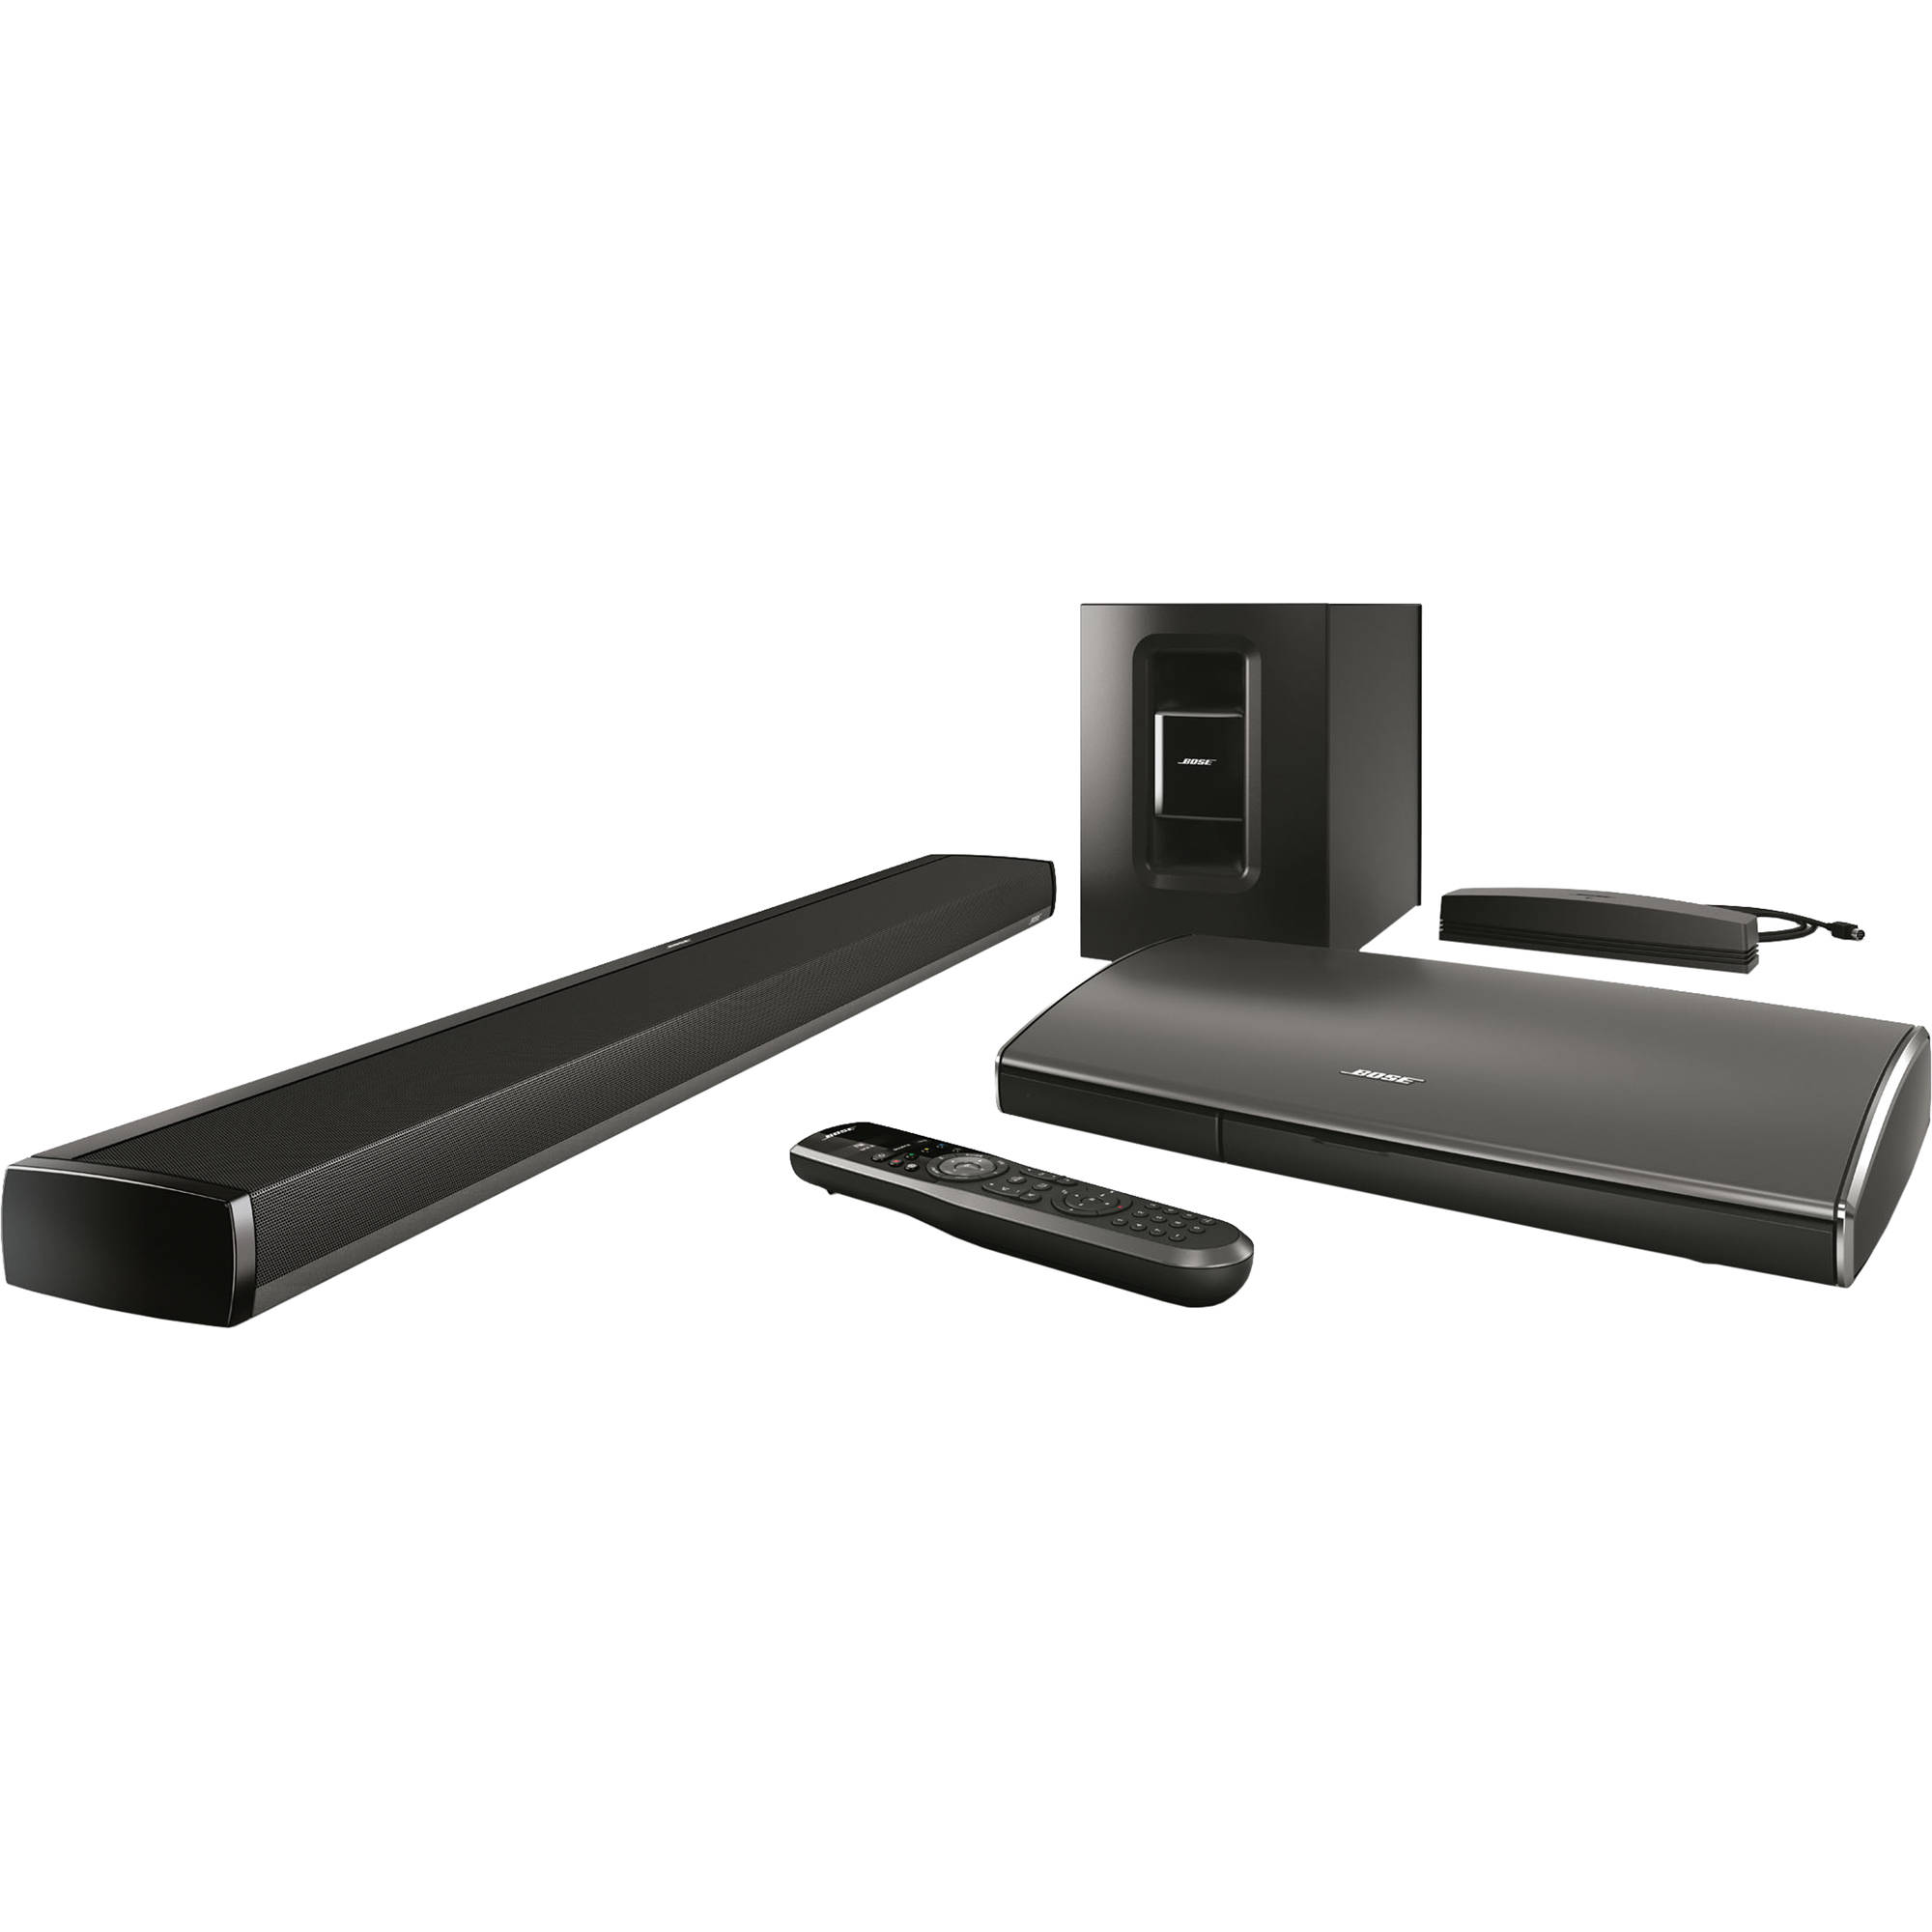 bose lifestyle 135 series iii home theater system 715605 1300. Black Bedroom Furniture Sets. Home Design Ideas